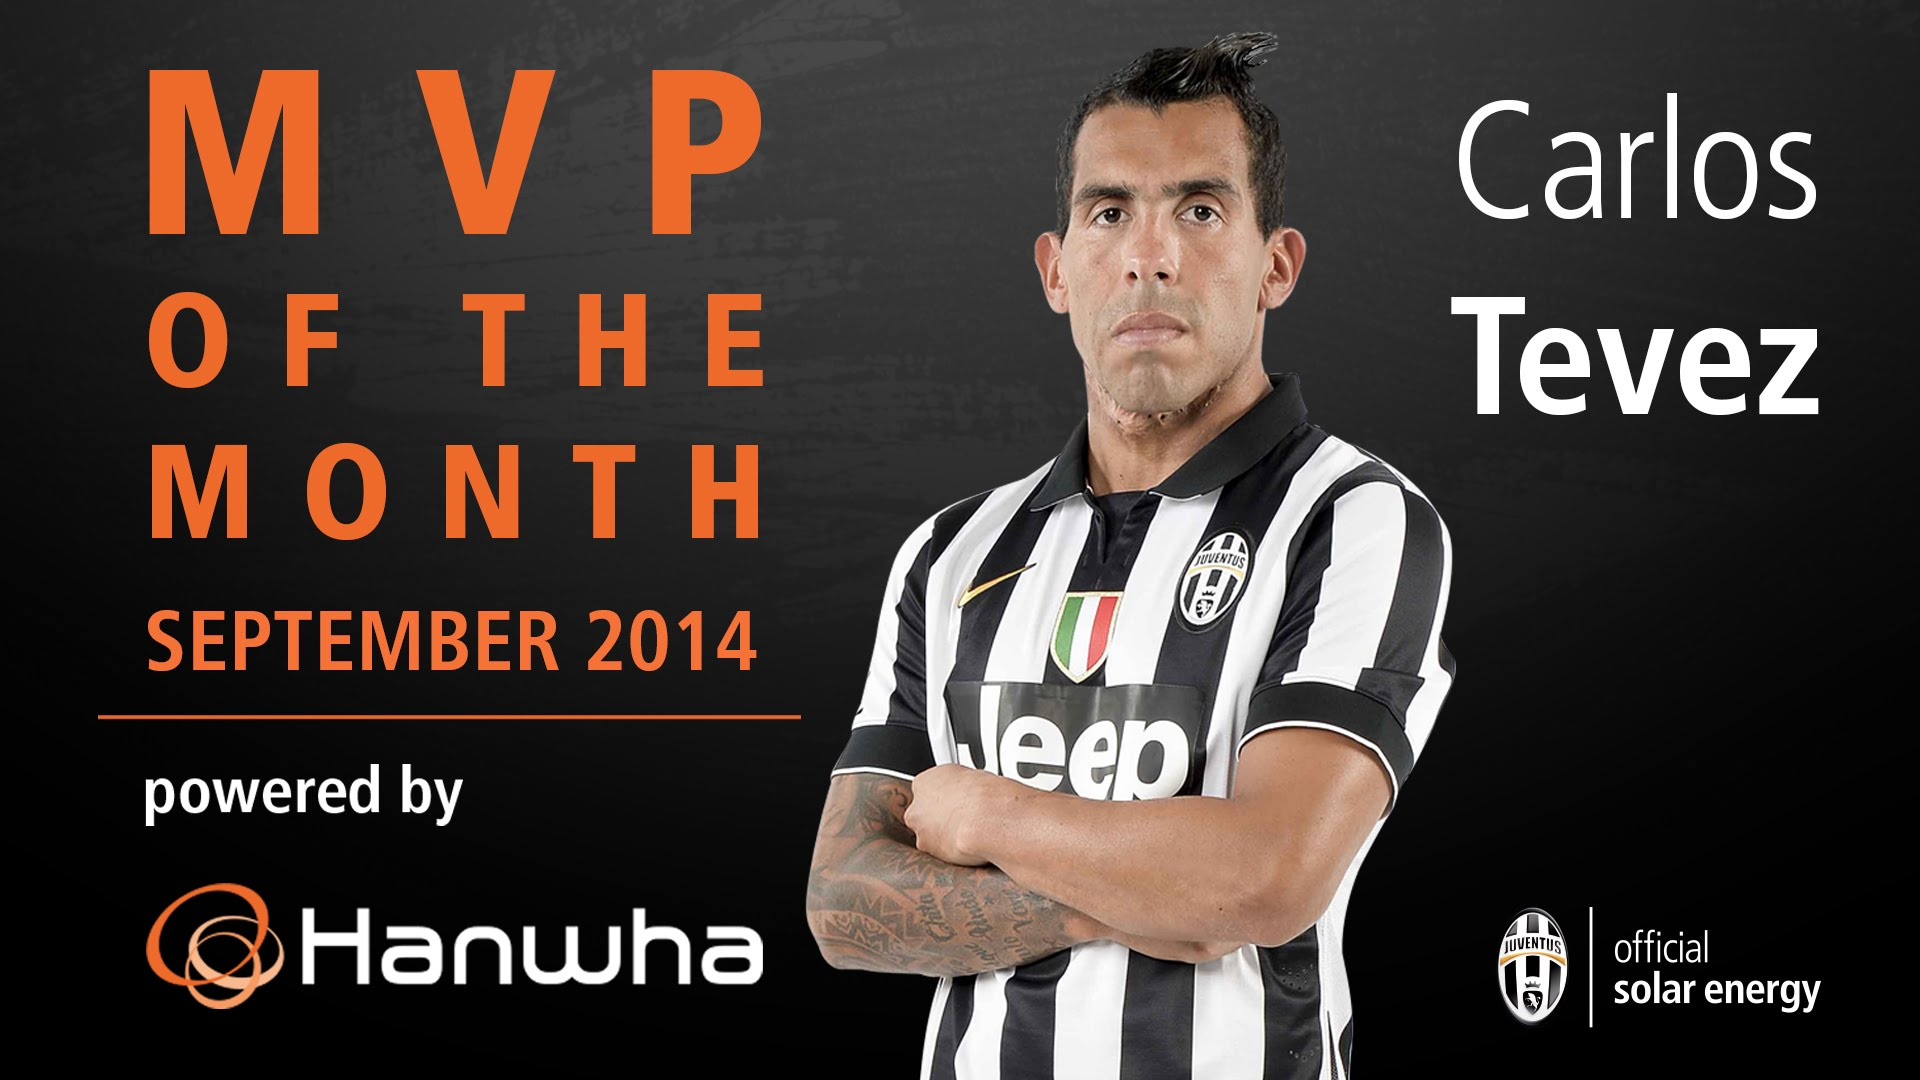 Carlos Tevez's goals and skills September 2014 - MVP of the month powered by Hanwha